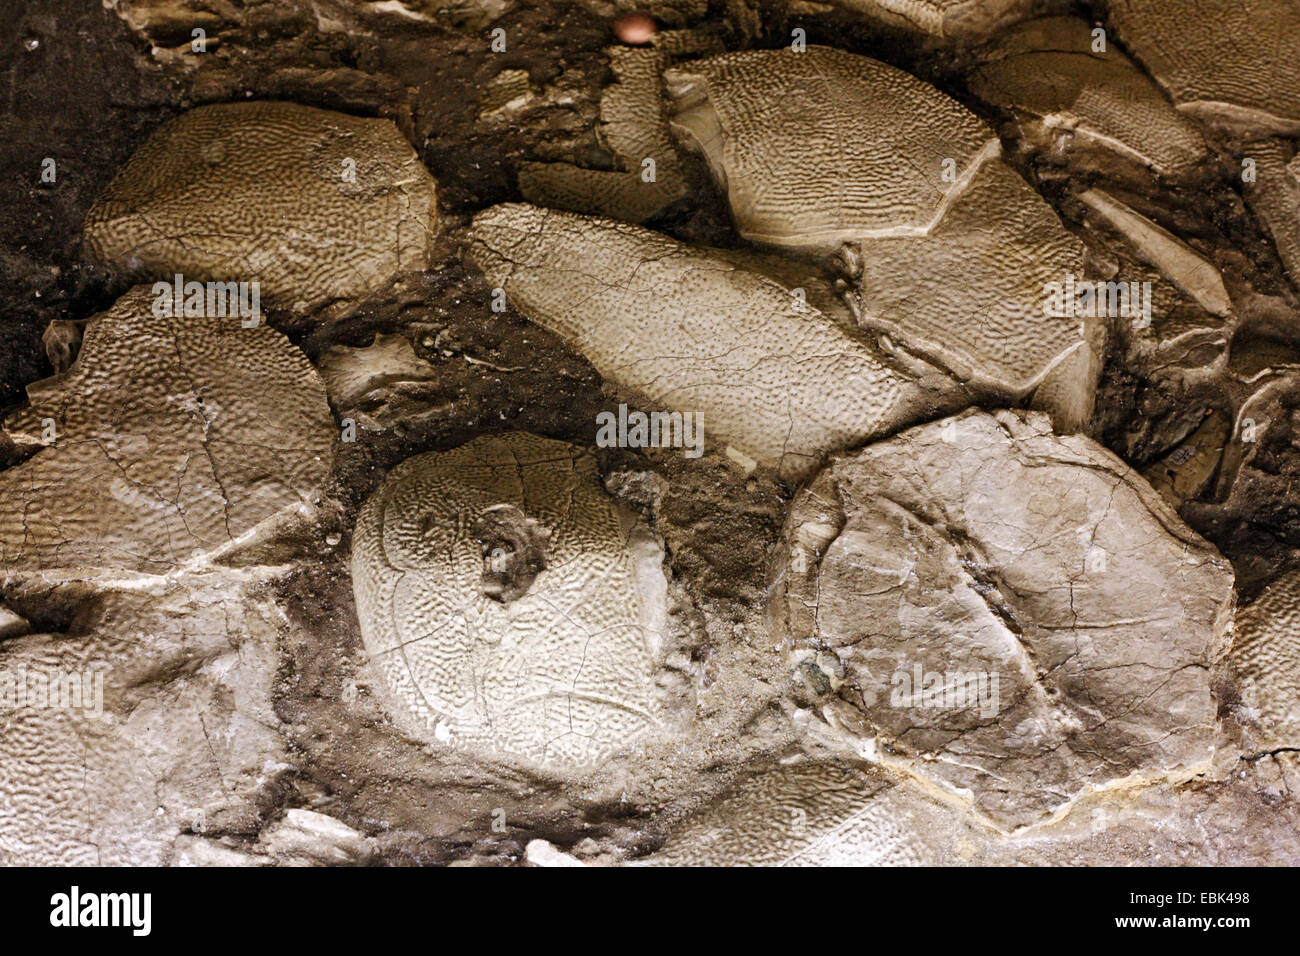 Fossil eggs of a  dinosaur (Bothriolepis maxima) - Stock Image